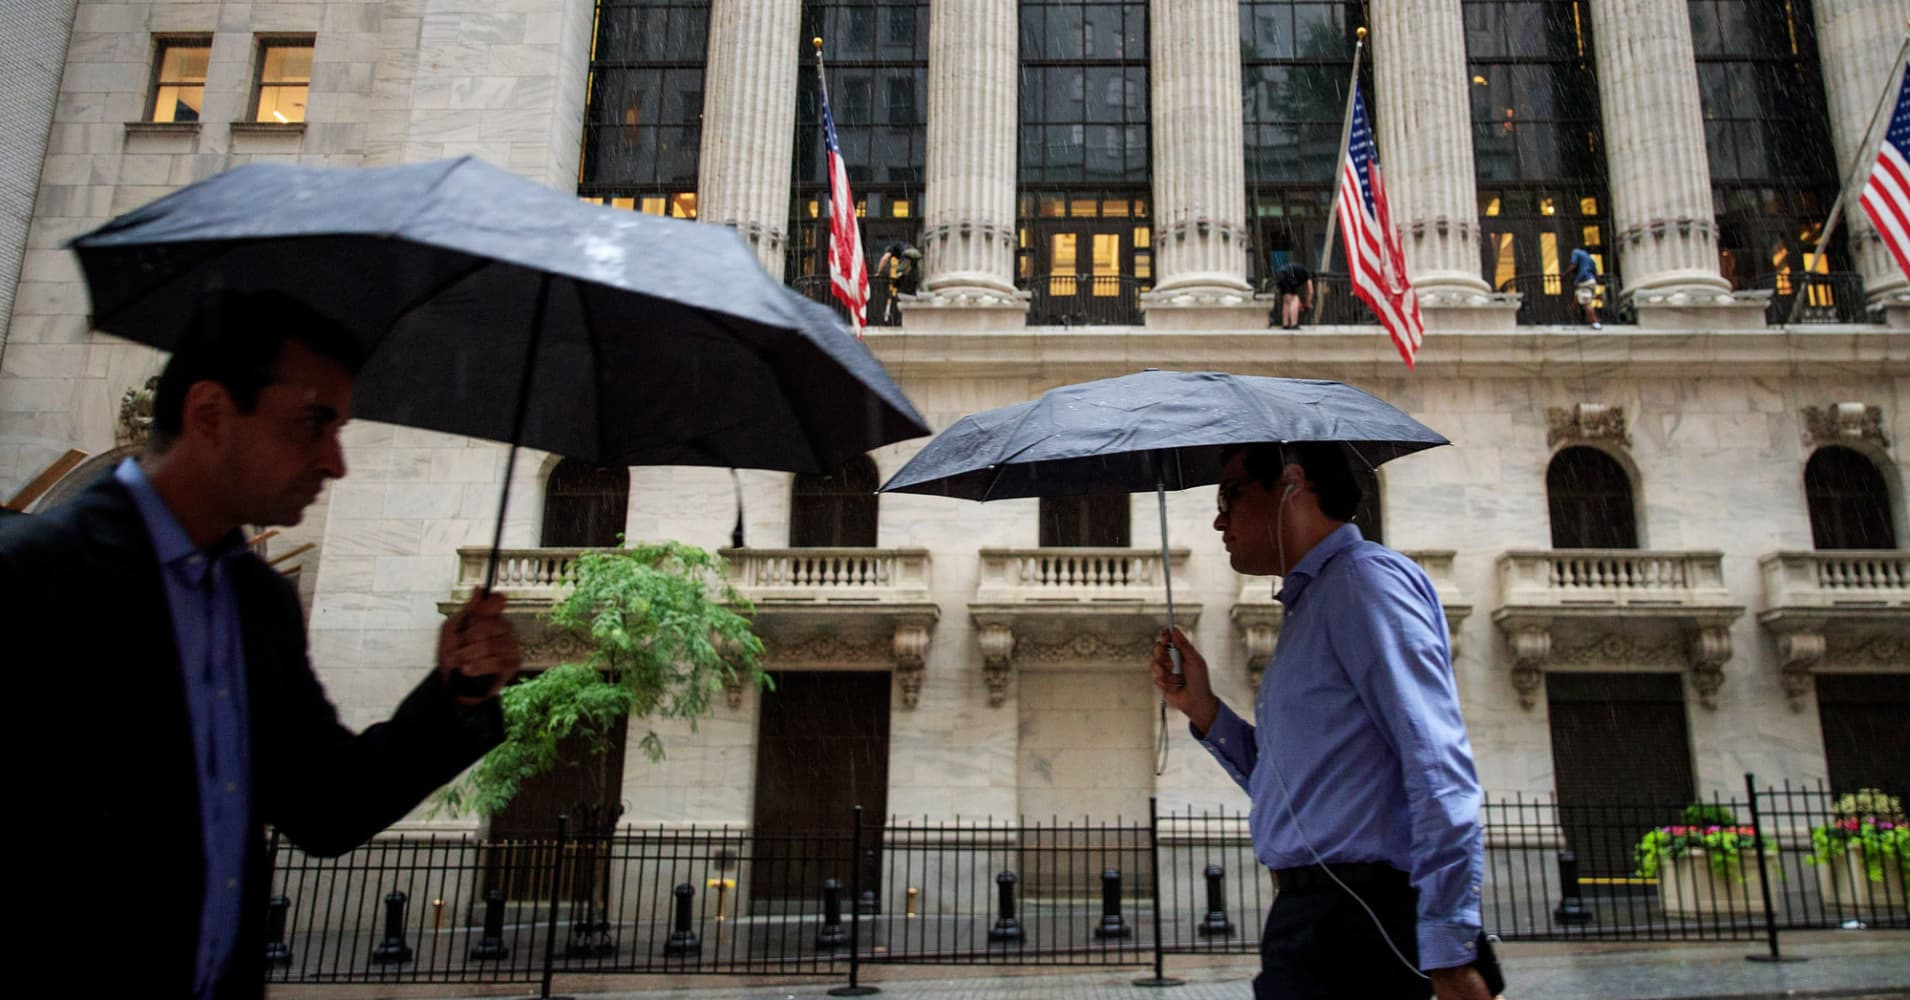 Top advisers pull their clients' investments out of hedge funds